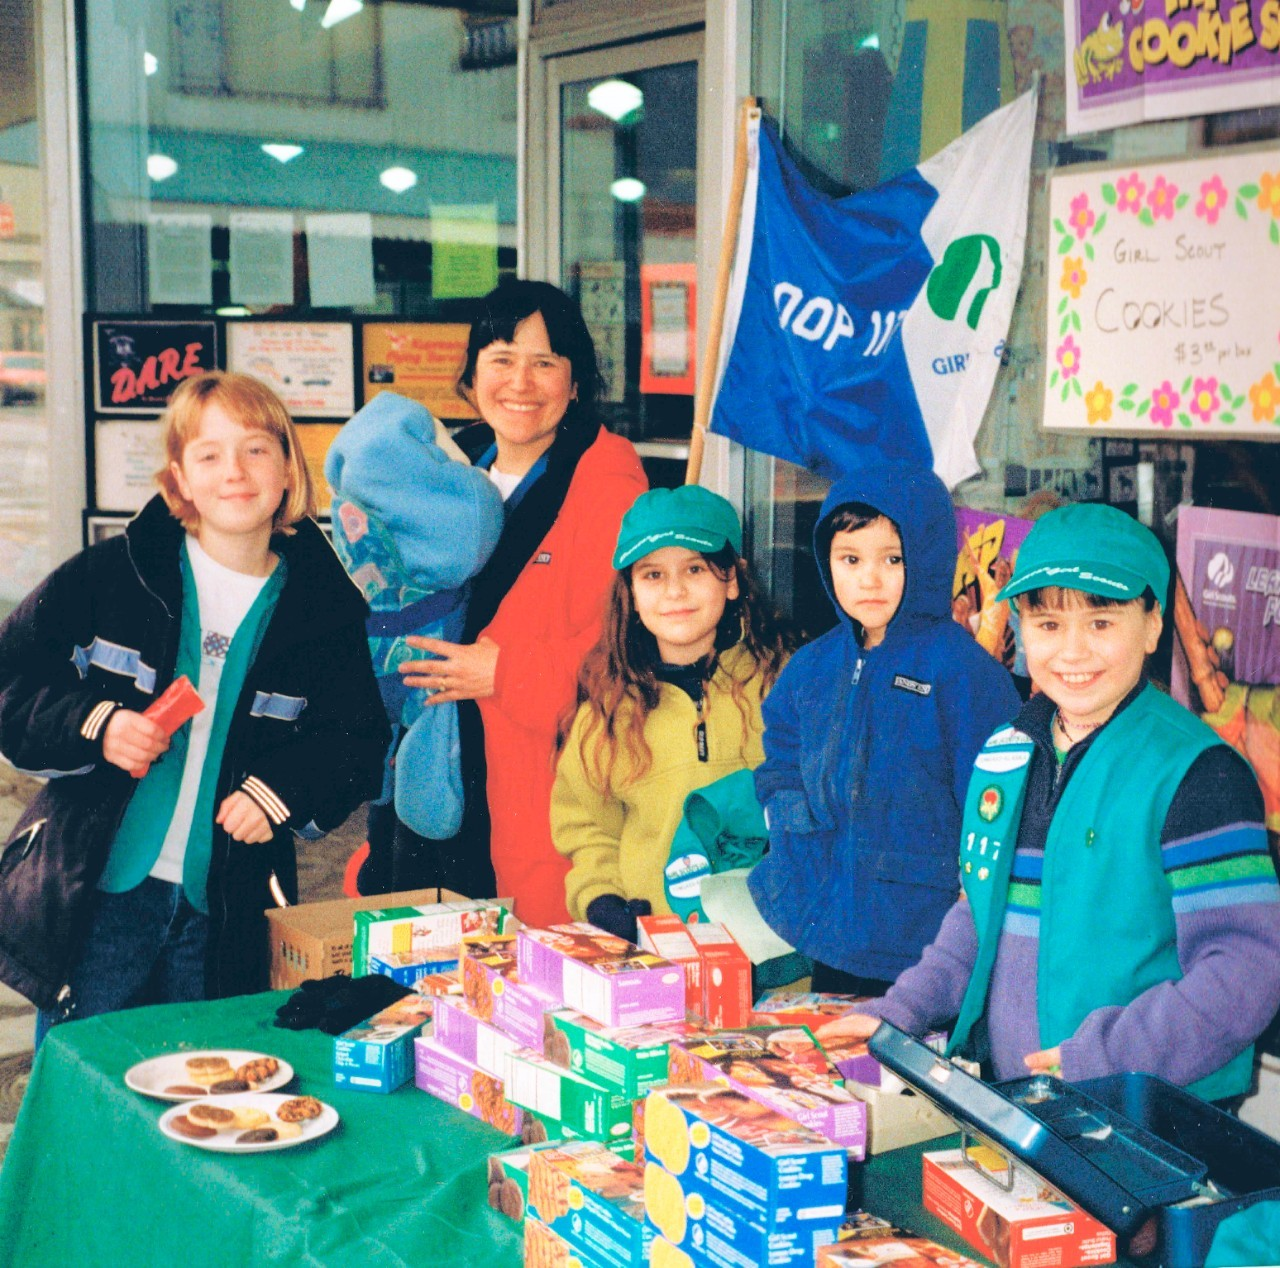 Year 1999 Troop 4112 Booth Sales